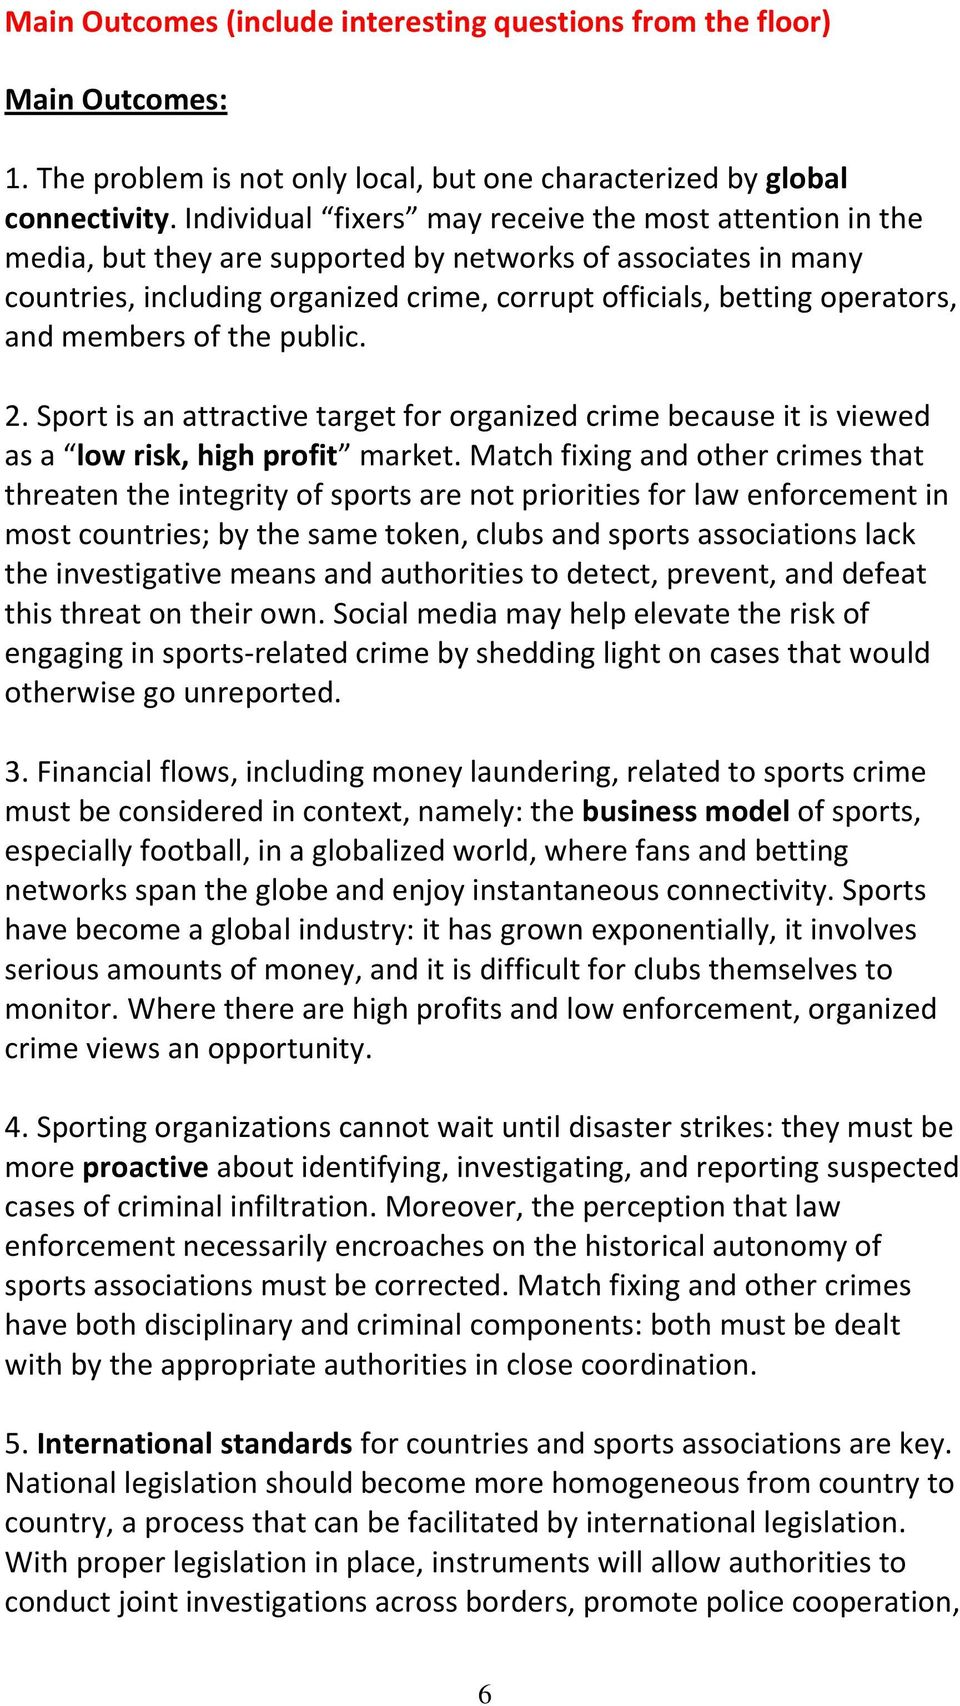 members of the public. 2. Sport is an attractive target for organized crime because it is viewed as a low risk, high profit market.